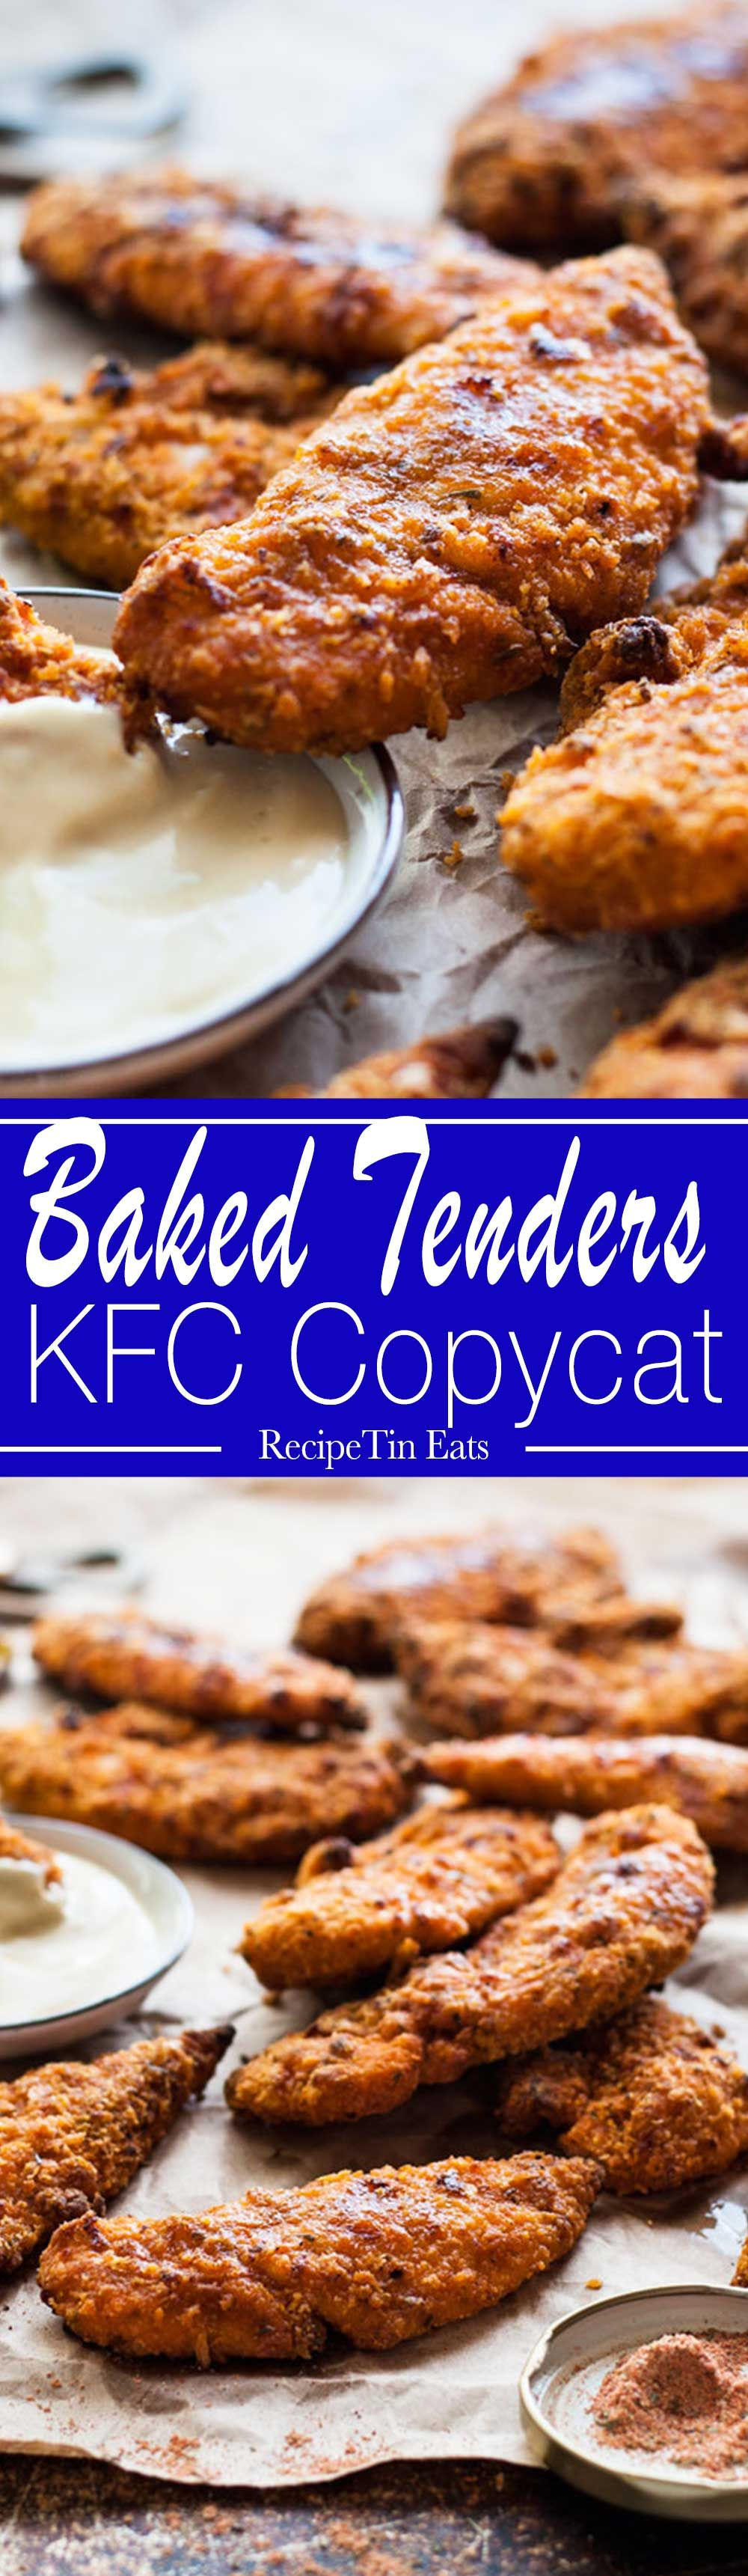 """KFC Copycat Oven """"Fried"""" Chicken Tenders   Made this for dinner the other night, this really does taste like KFC!!!!"""